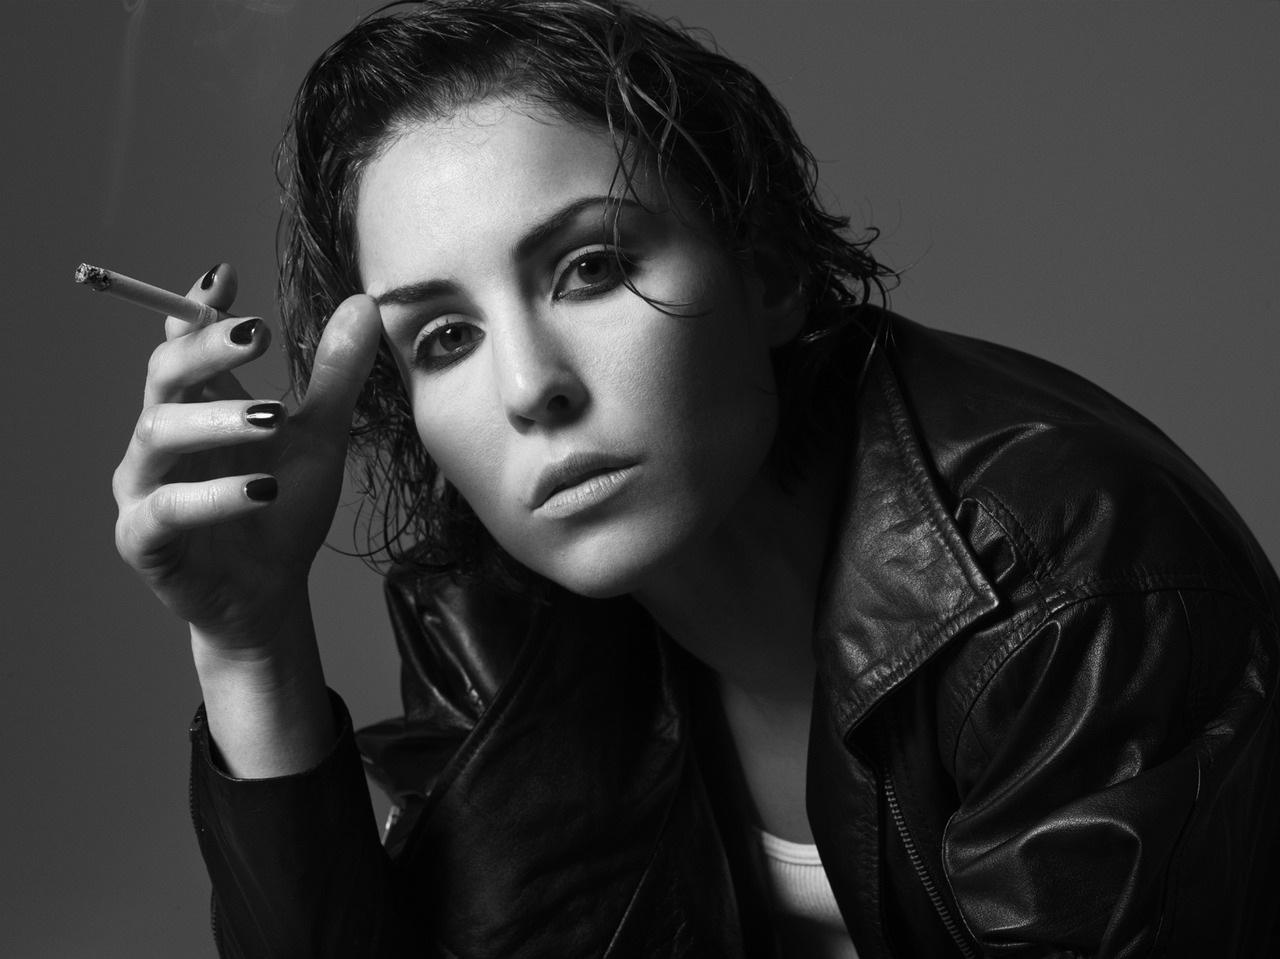 monochrome-noomi-rapace-photos-18360-18910-hd-wallpapers